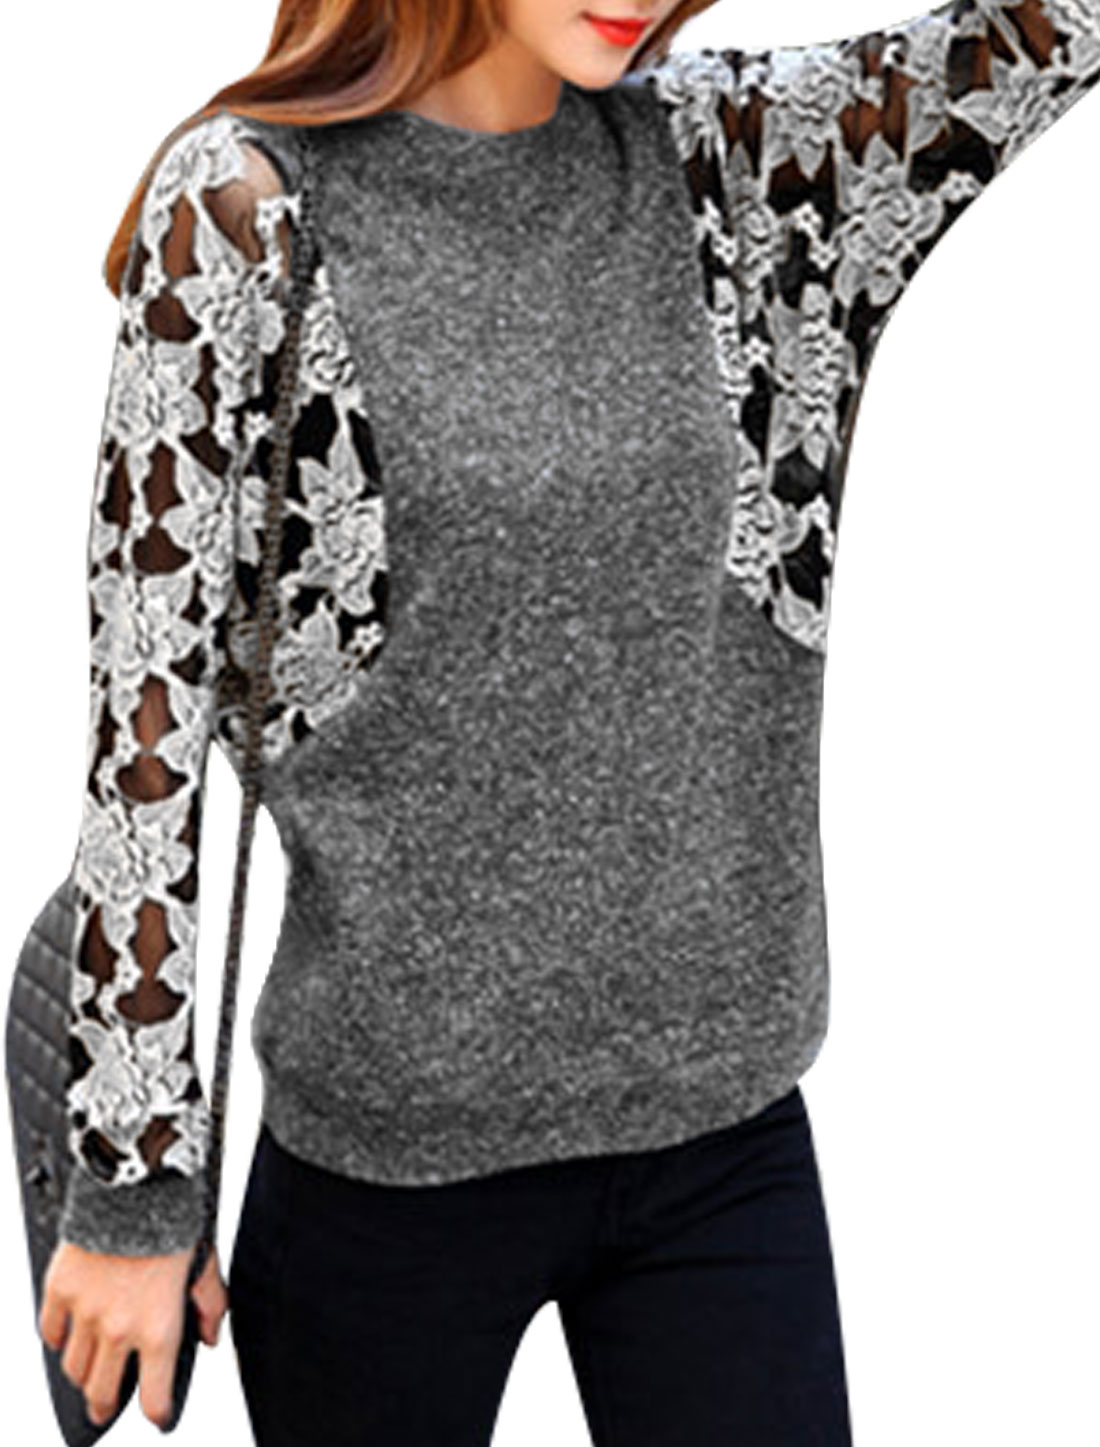 Women Bat Sleeves Floral Design Pullover Casual Knitted Top Dark Gray White S